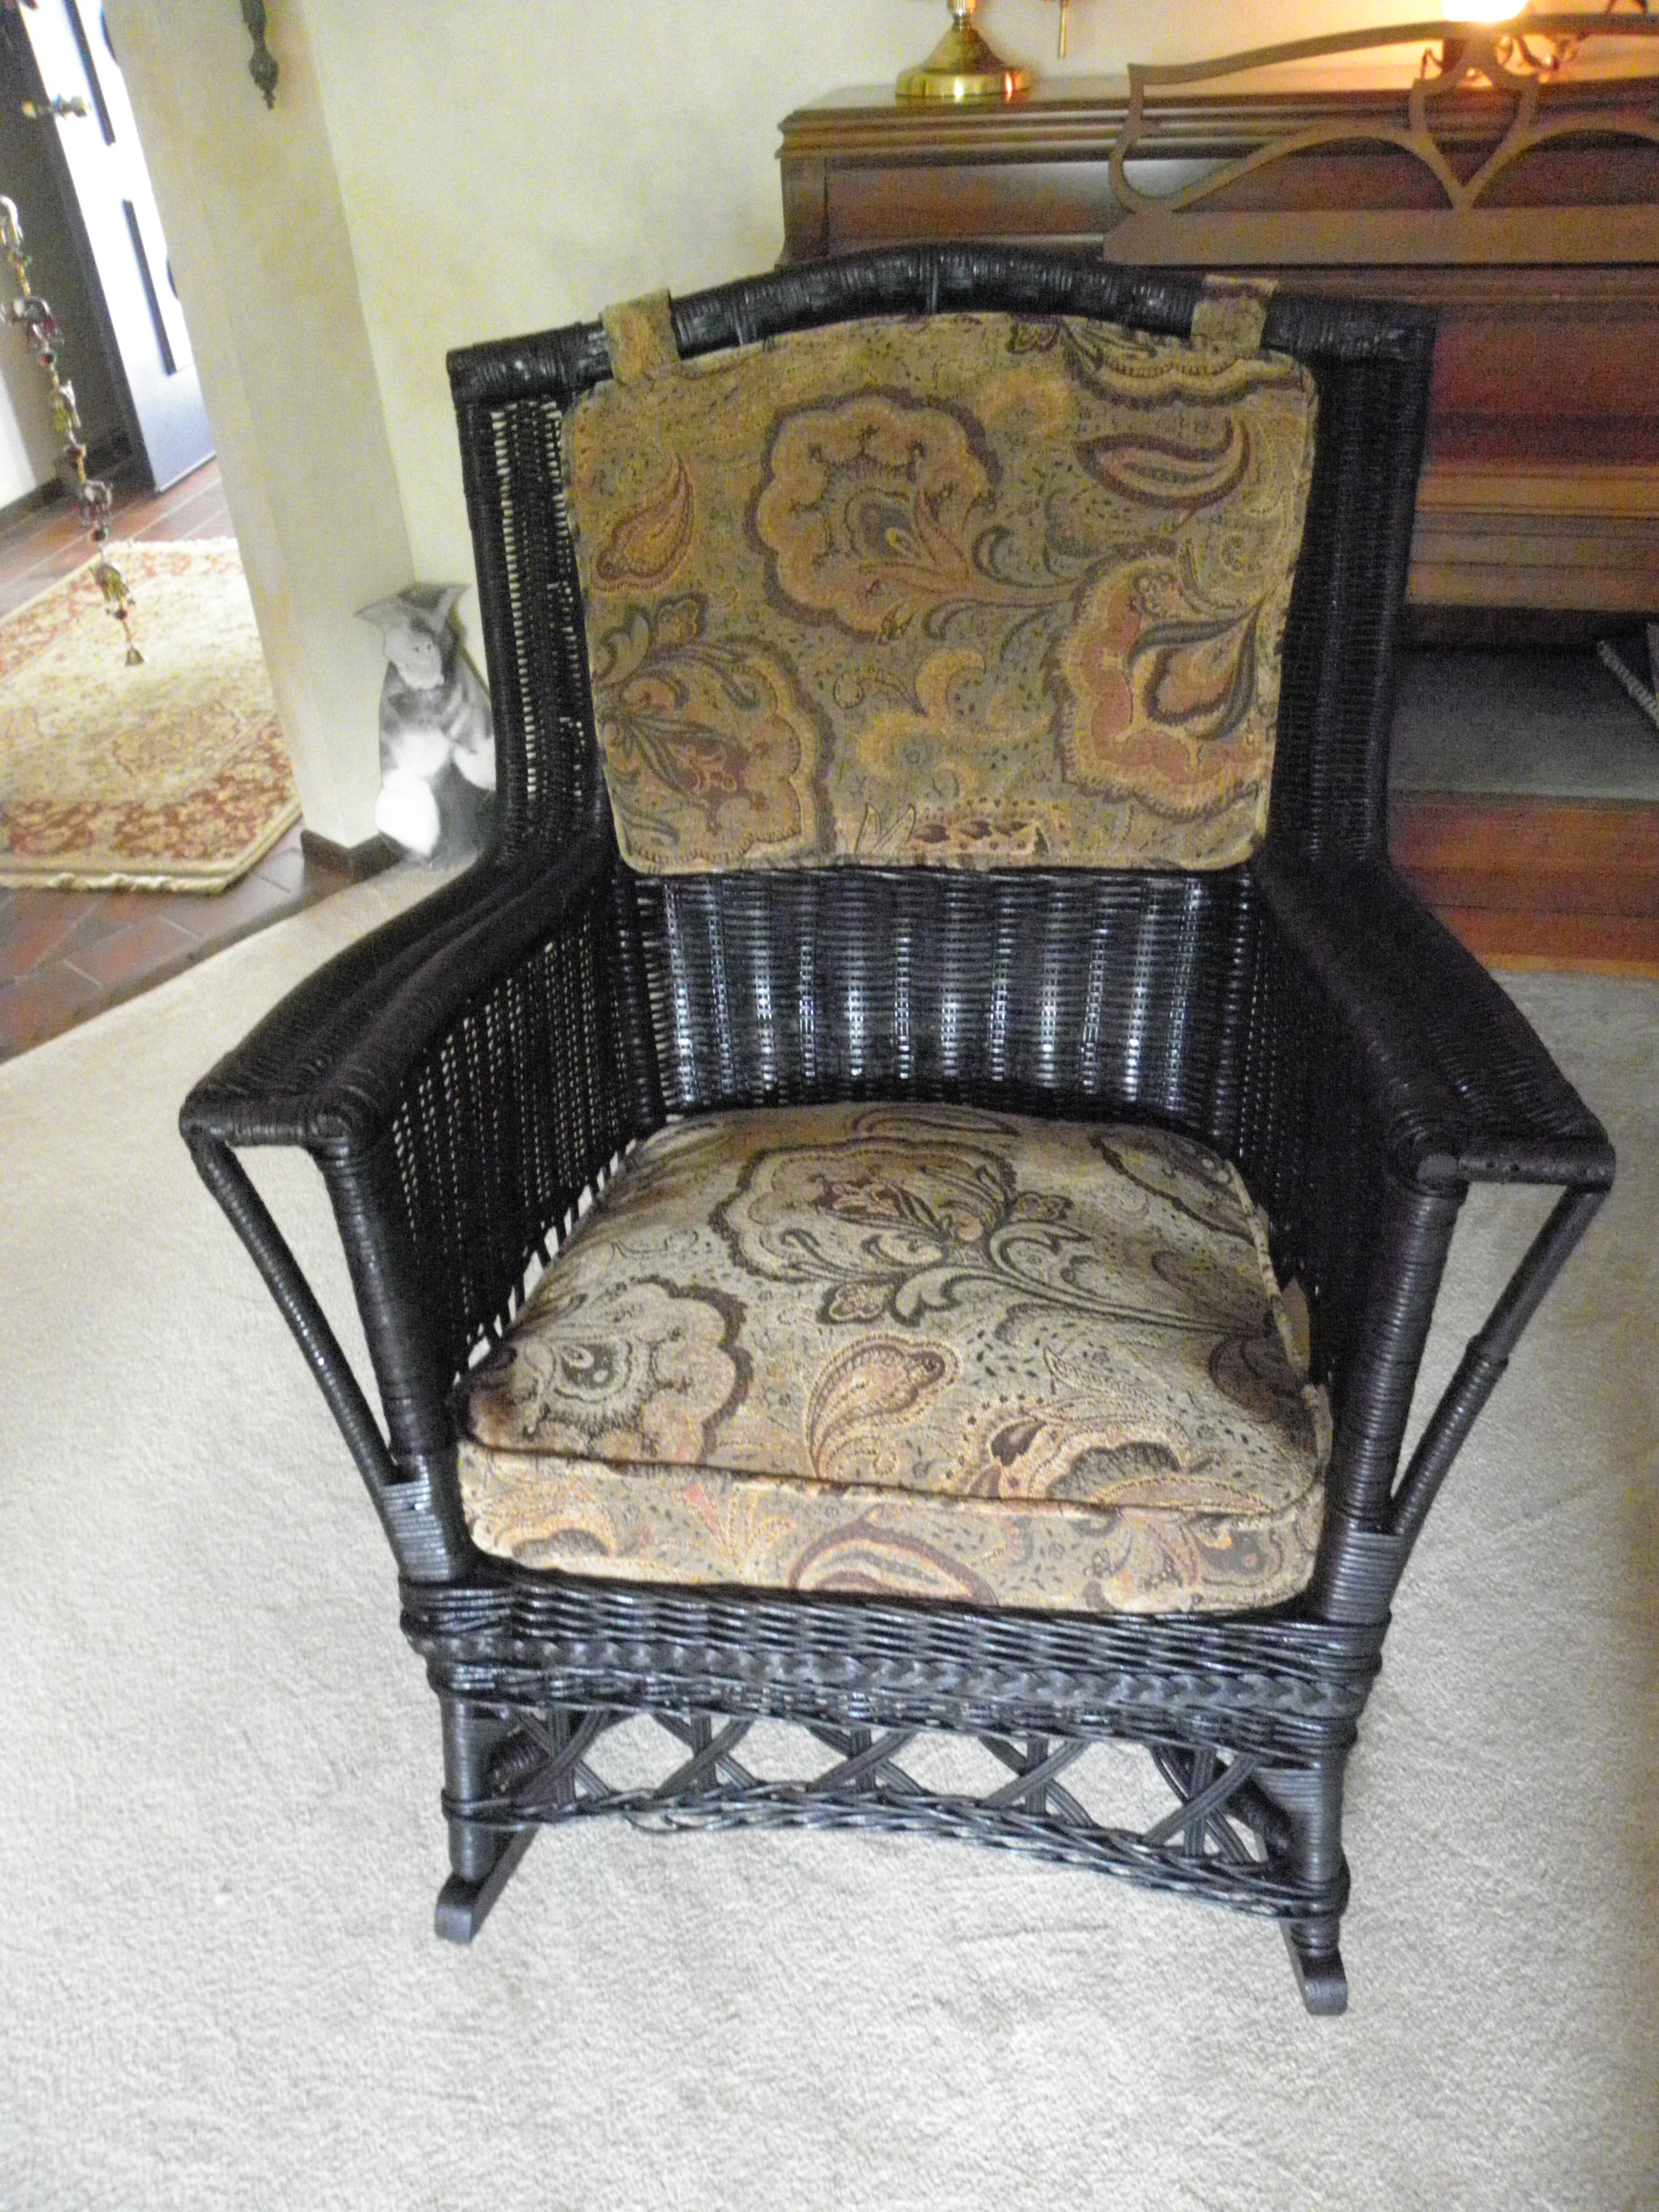 Vintage Wicker Rocking Chairs Intended For Famous Luxury Vintage Wicker Rocking Chair In Home Remodel Ideas With (View 4 of 20)